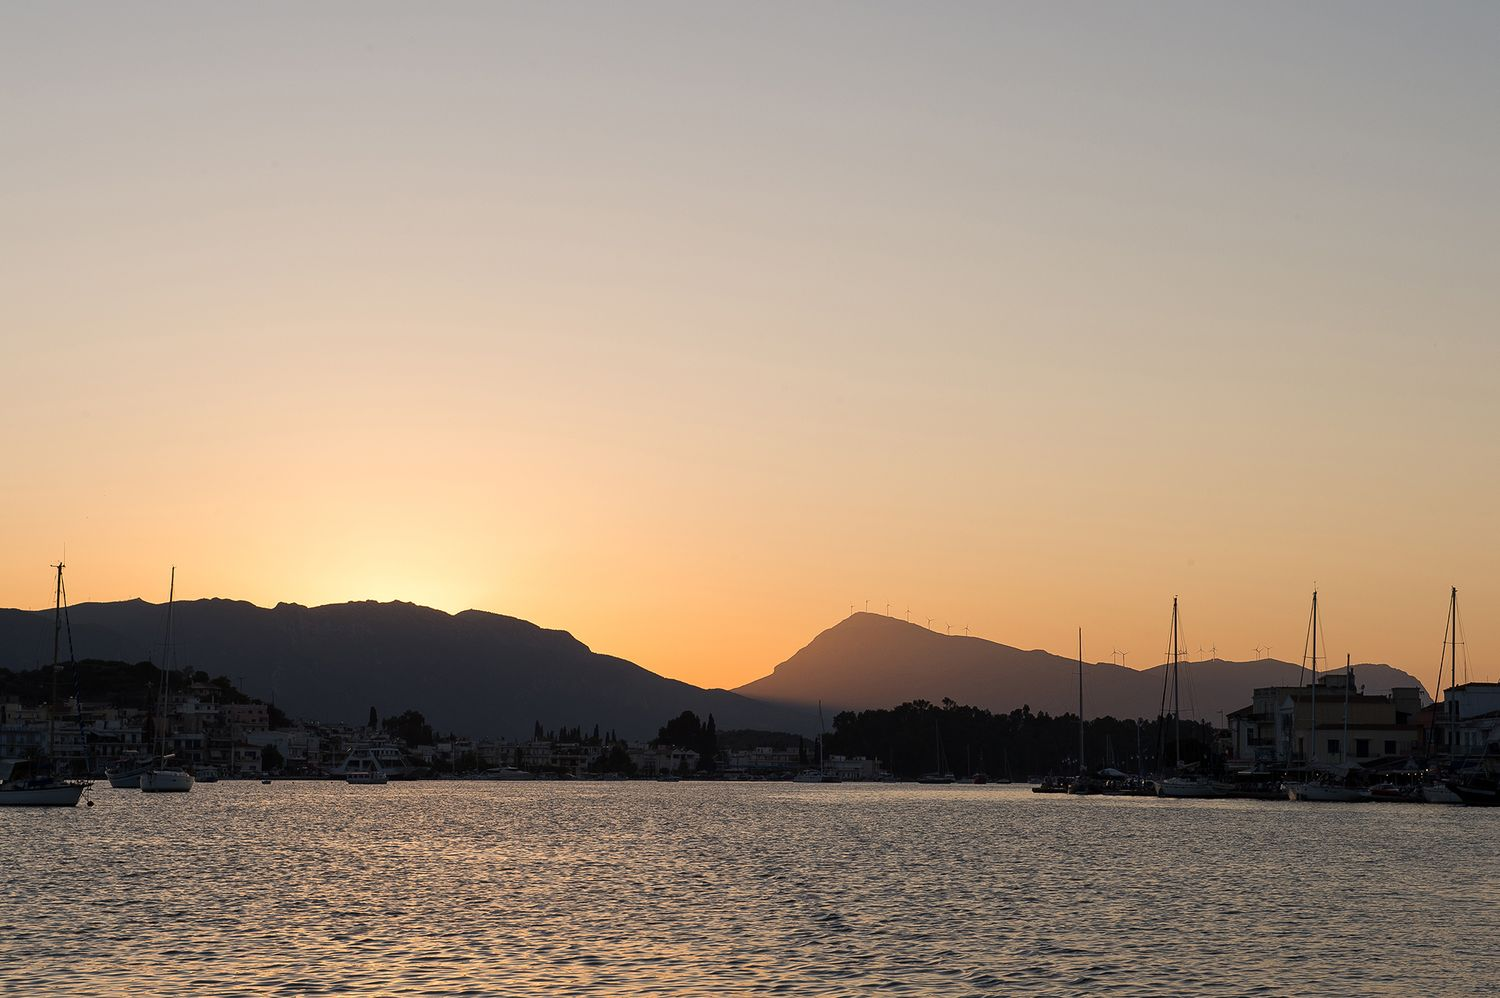 landscape of poros island during the sunset